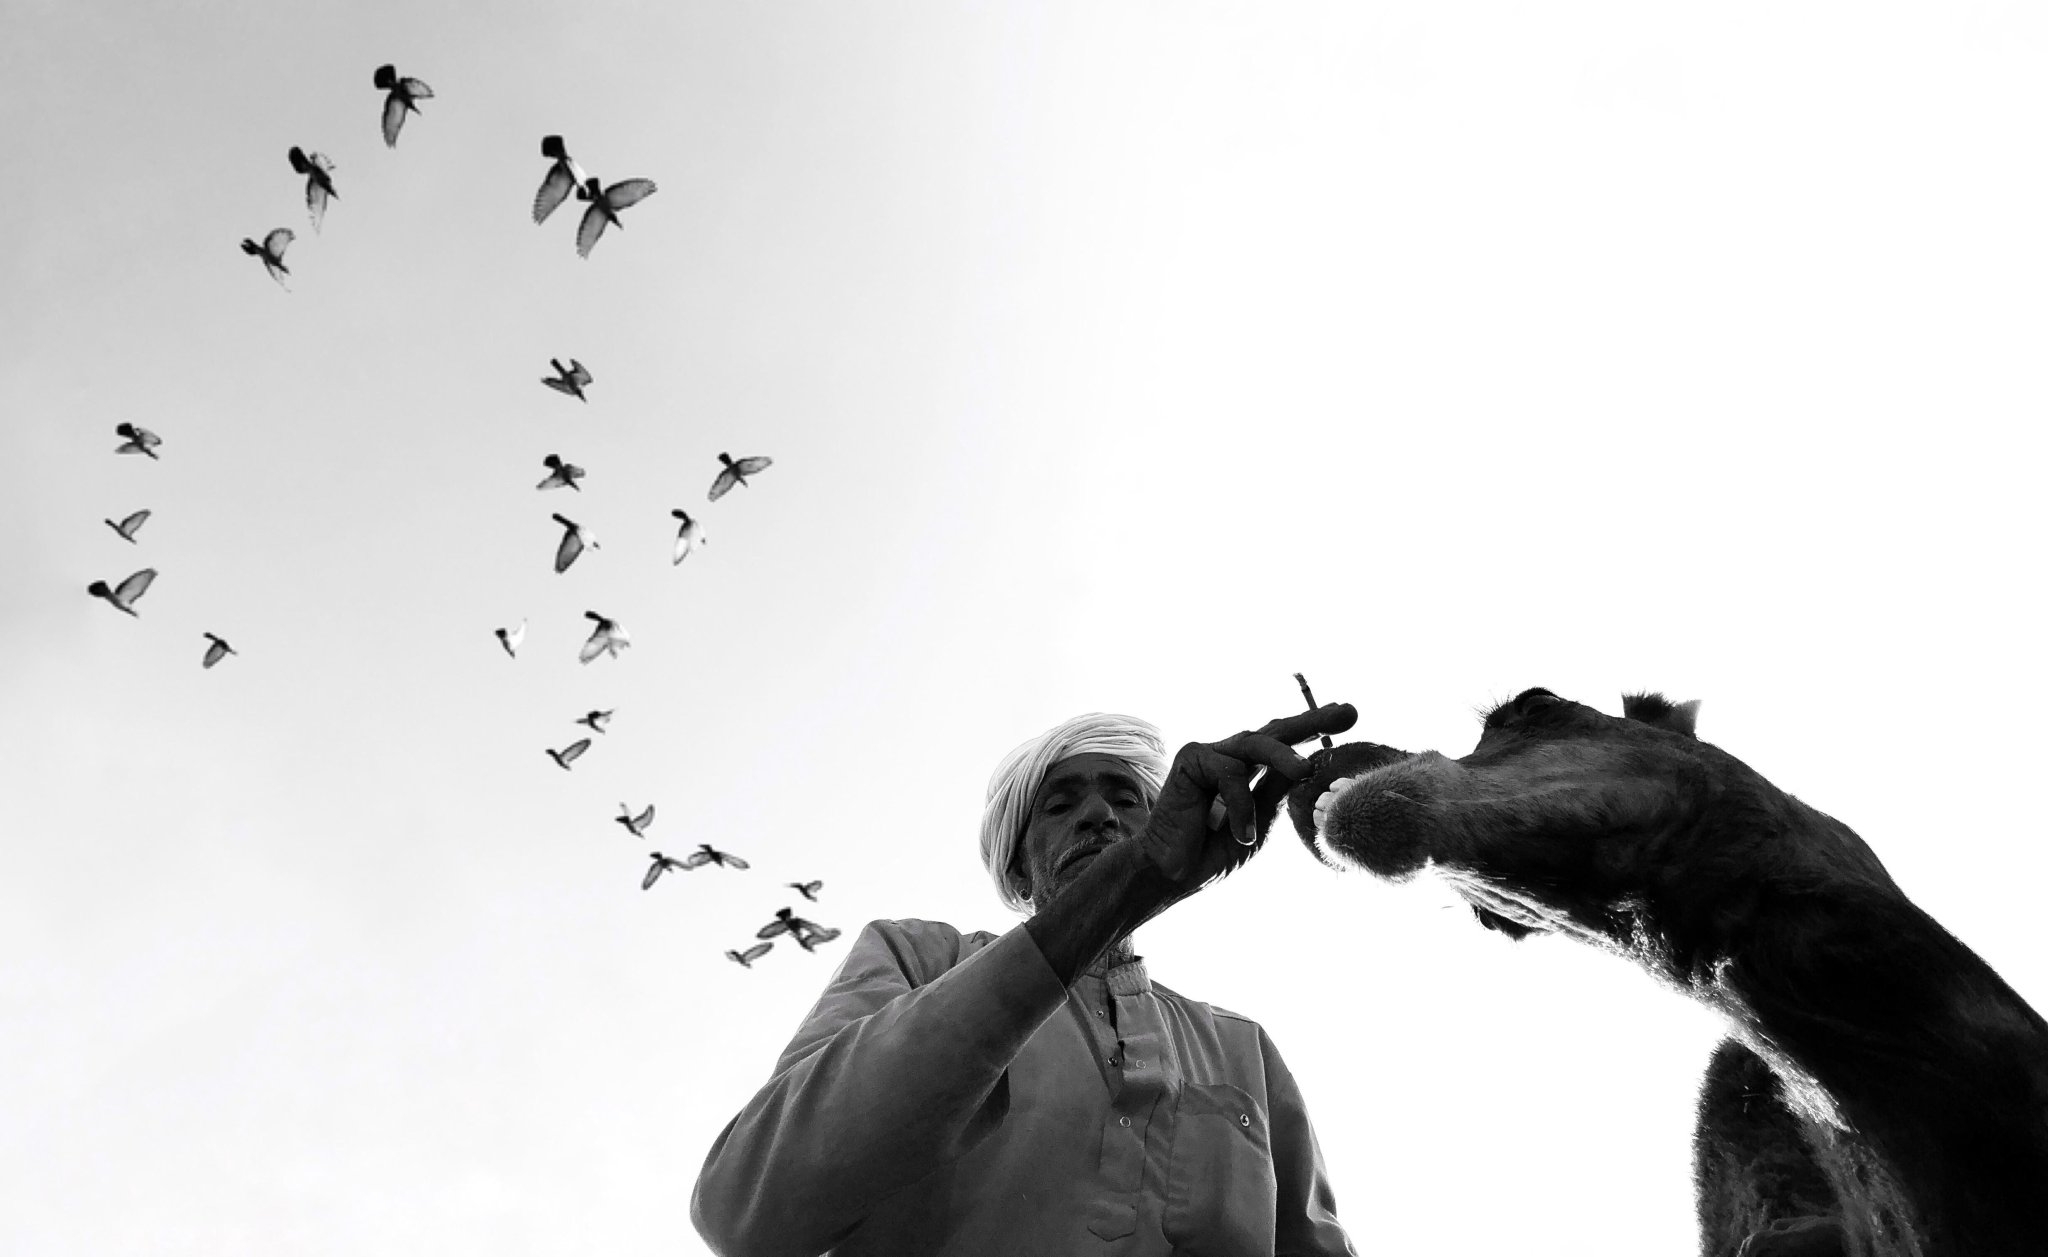 Dimpy Bhalotia: Pure Black and White Street Photography of Life's Beauty